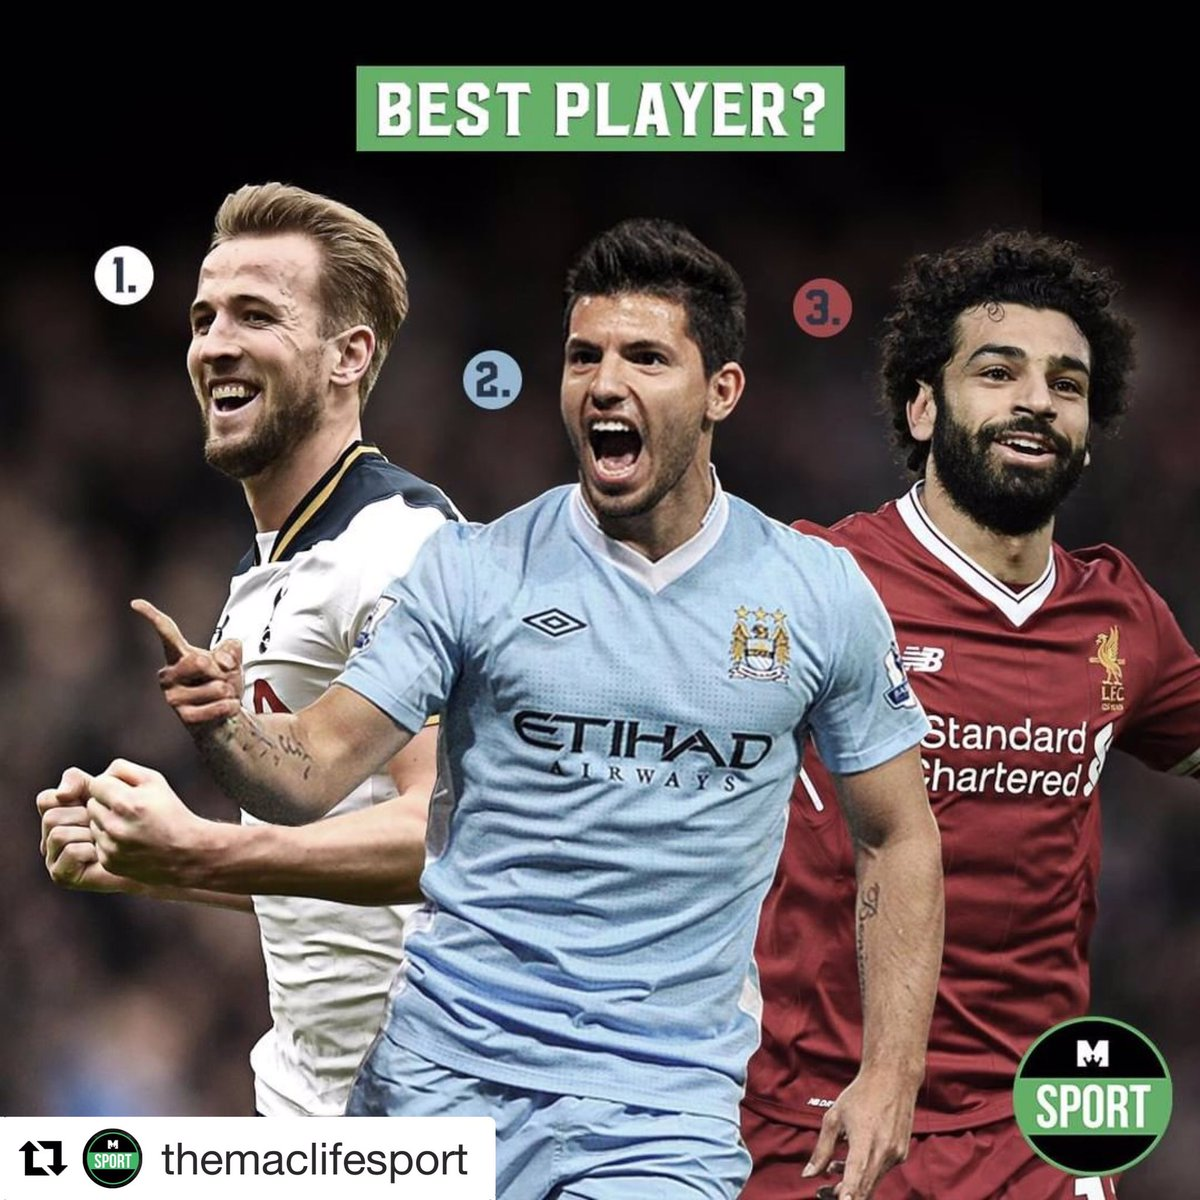 Harry Kane, Sergio Aguero and Mo Salah are lighting up this year's Premier League. We want to know who you think will finish top goal scorer? and with how many goals?  Place all your @premierleague football bets at @Betsafe for the best odds!  @Maclifeofficial